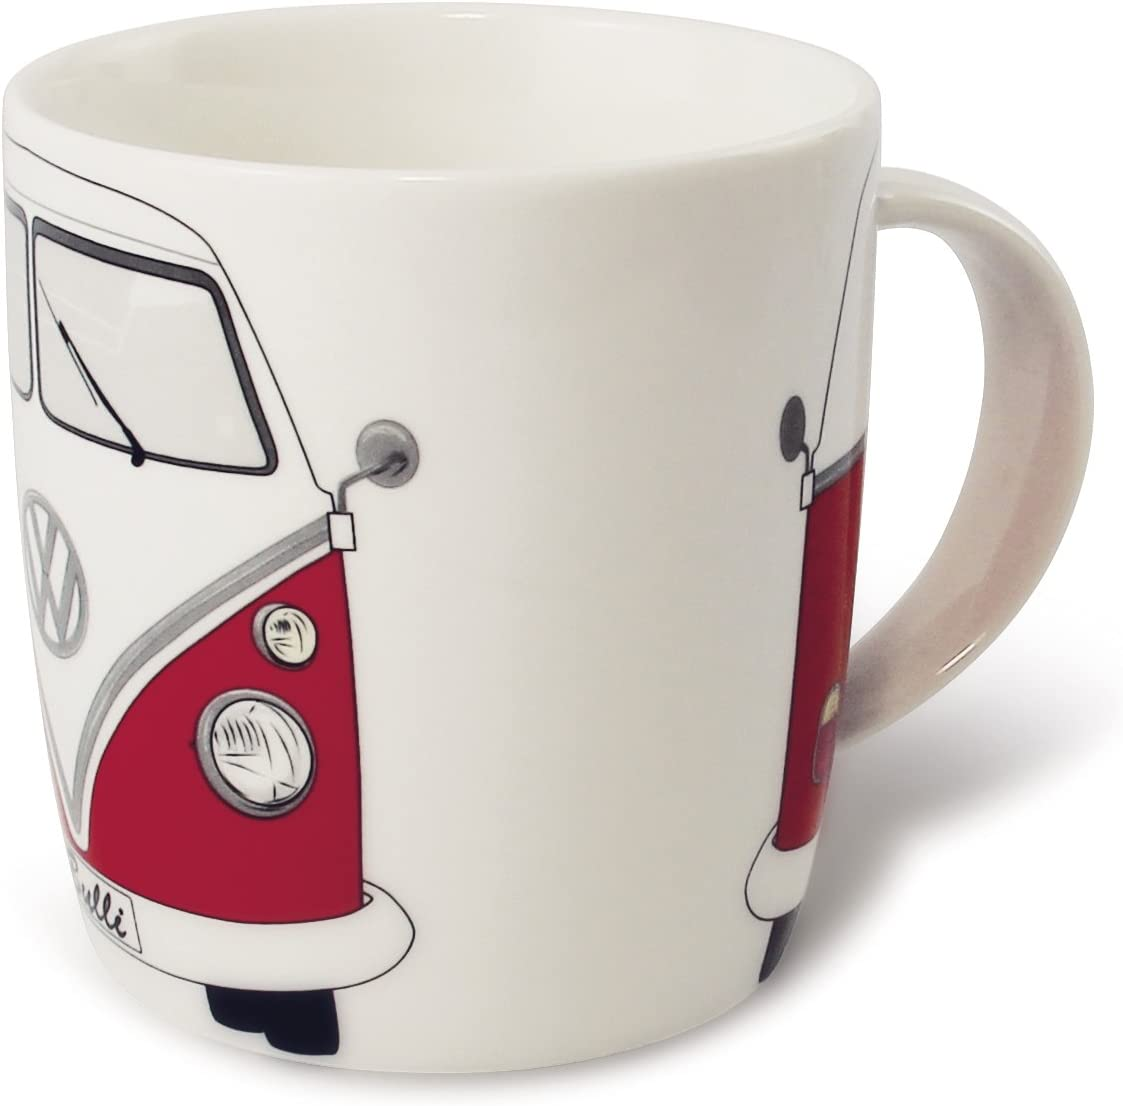 BRISA VW Collection - Volkswagen Samba Bus T1 Camper Van Coffee Mug, Tea Cup for Kitchen, Garage, Office - Camping Equipment/Gift-Idea/Souvenir (Design: Front/Red/White)